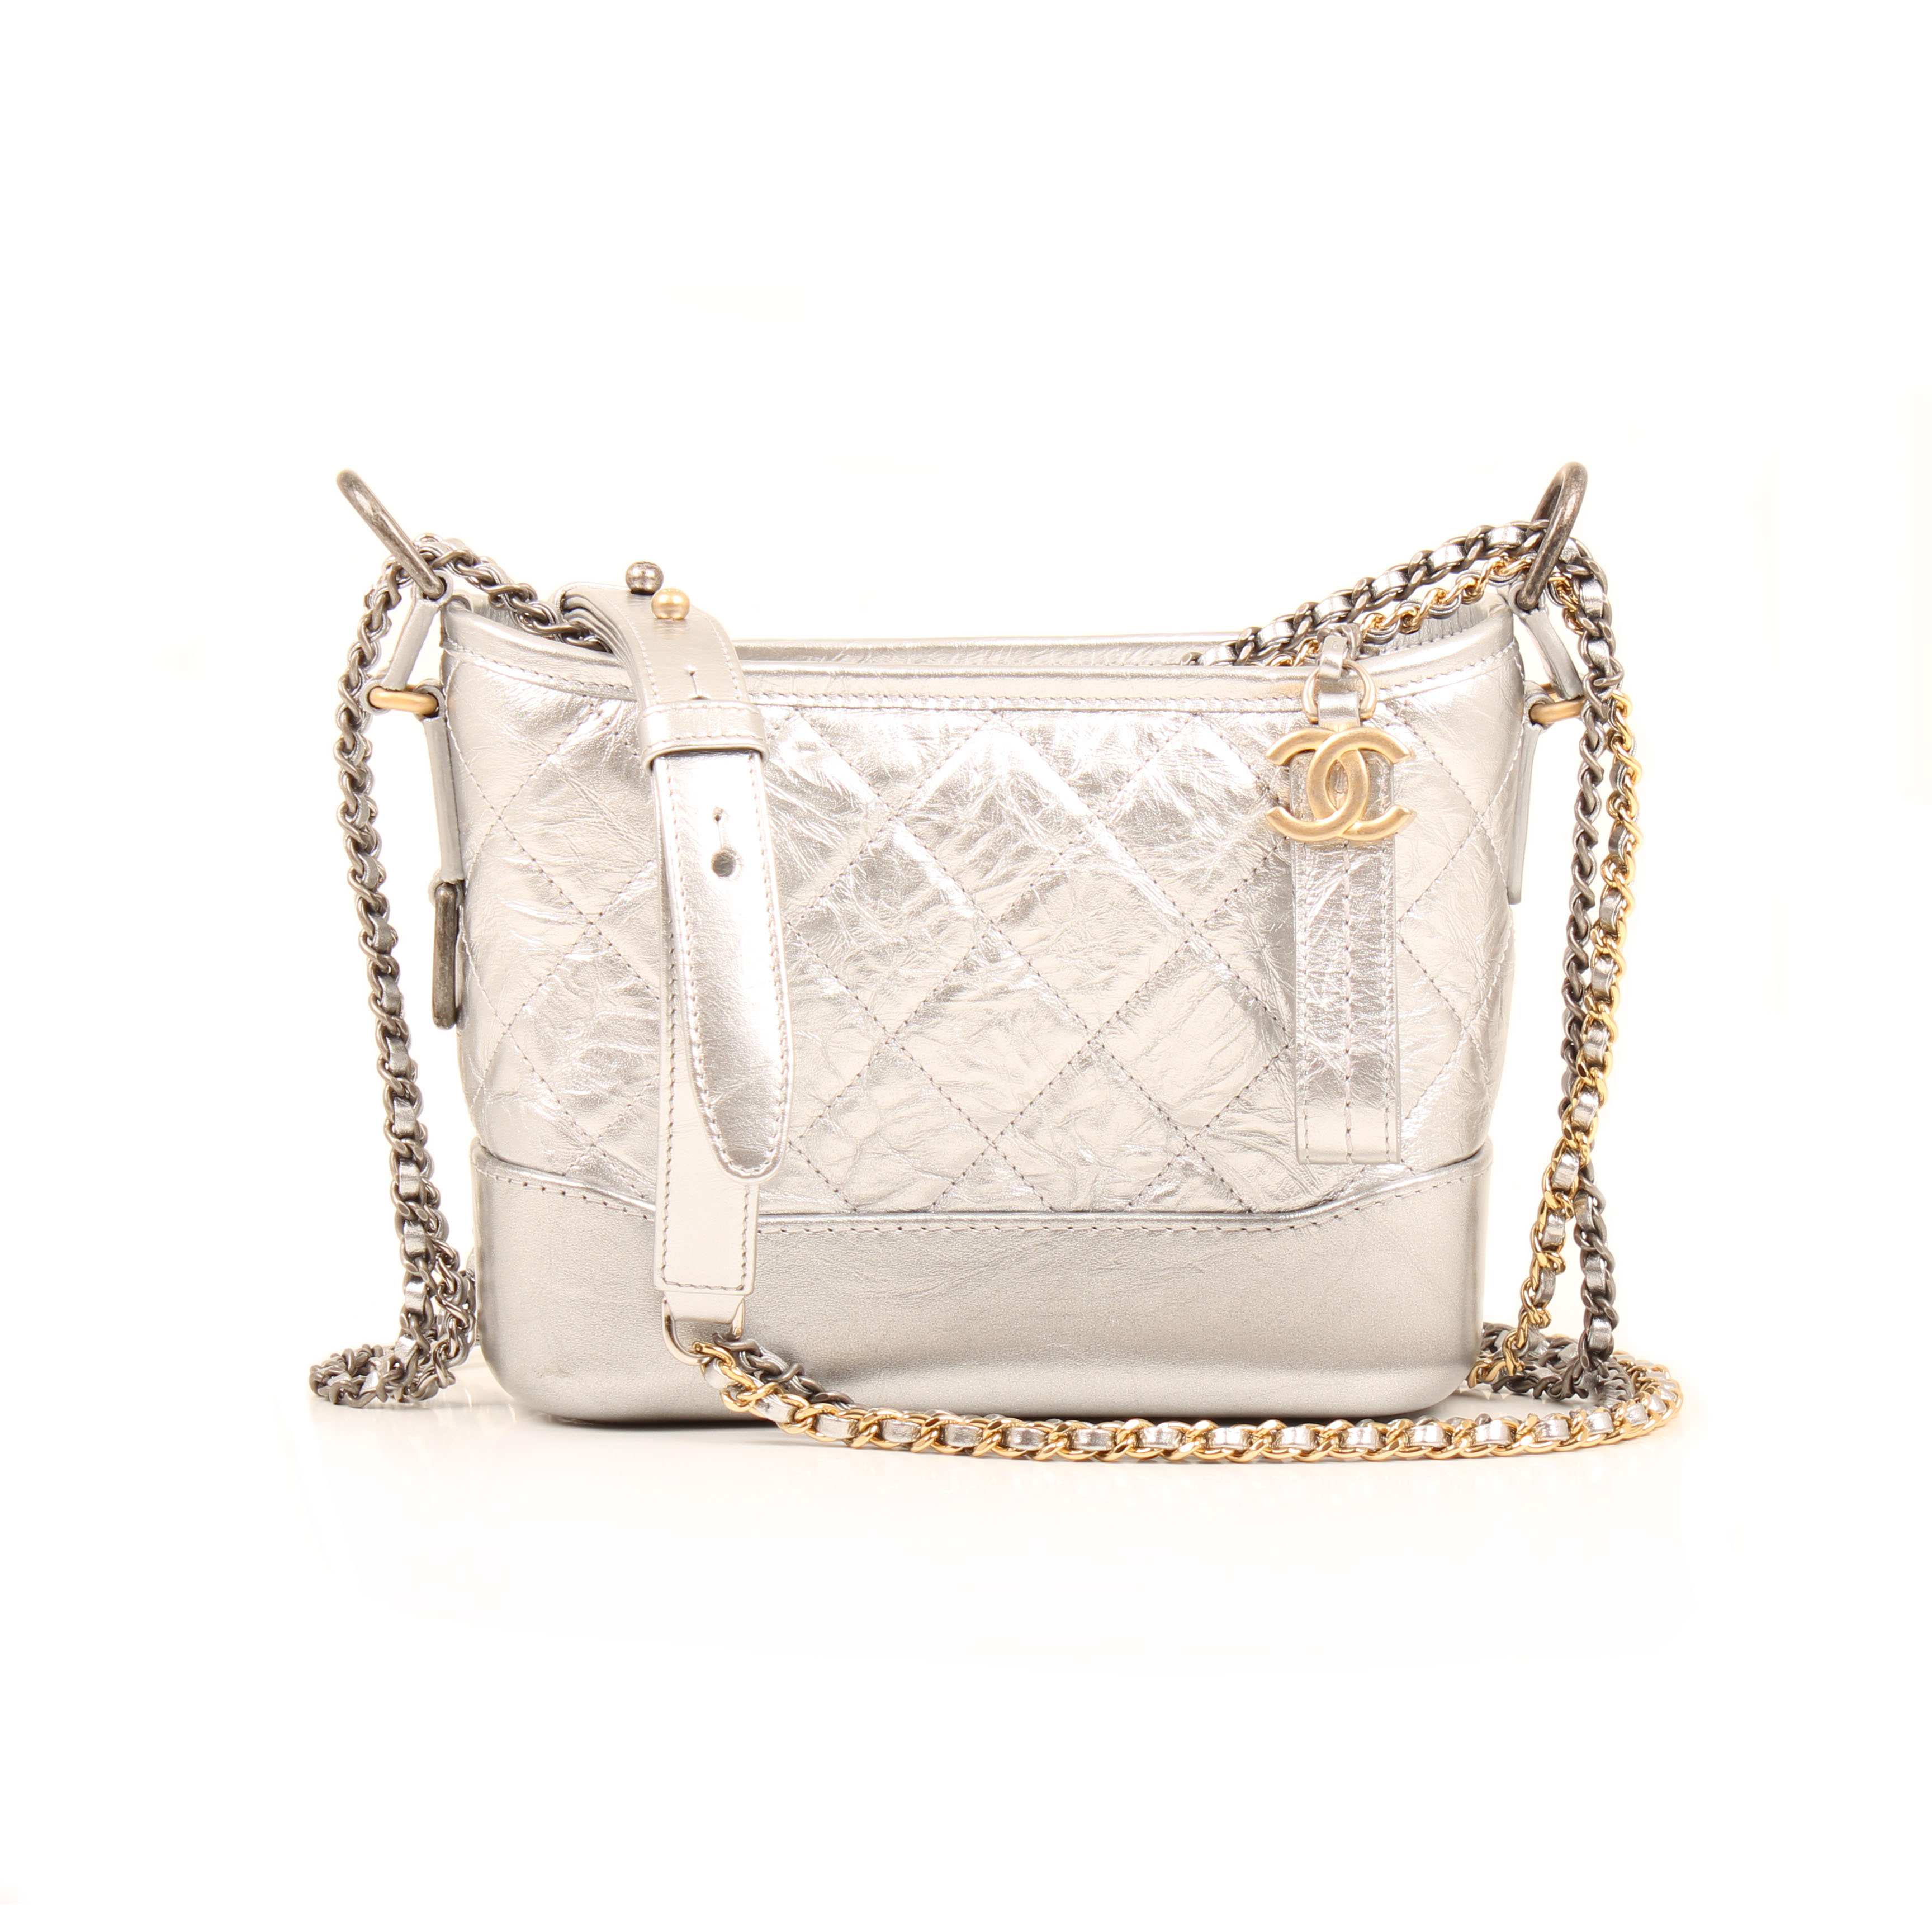 chanel gabrielle small hobo bag silver aged calfskin front chain